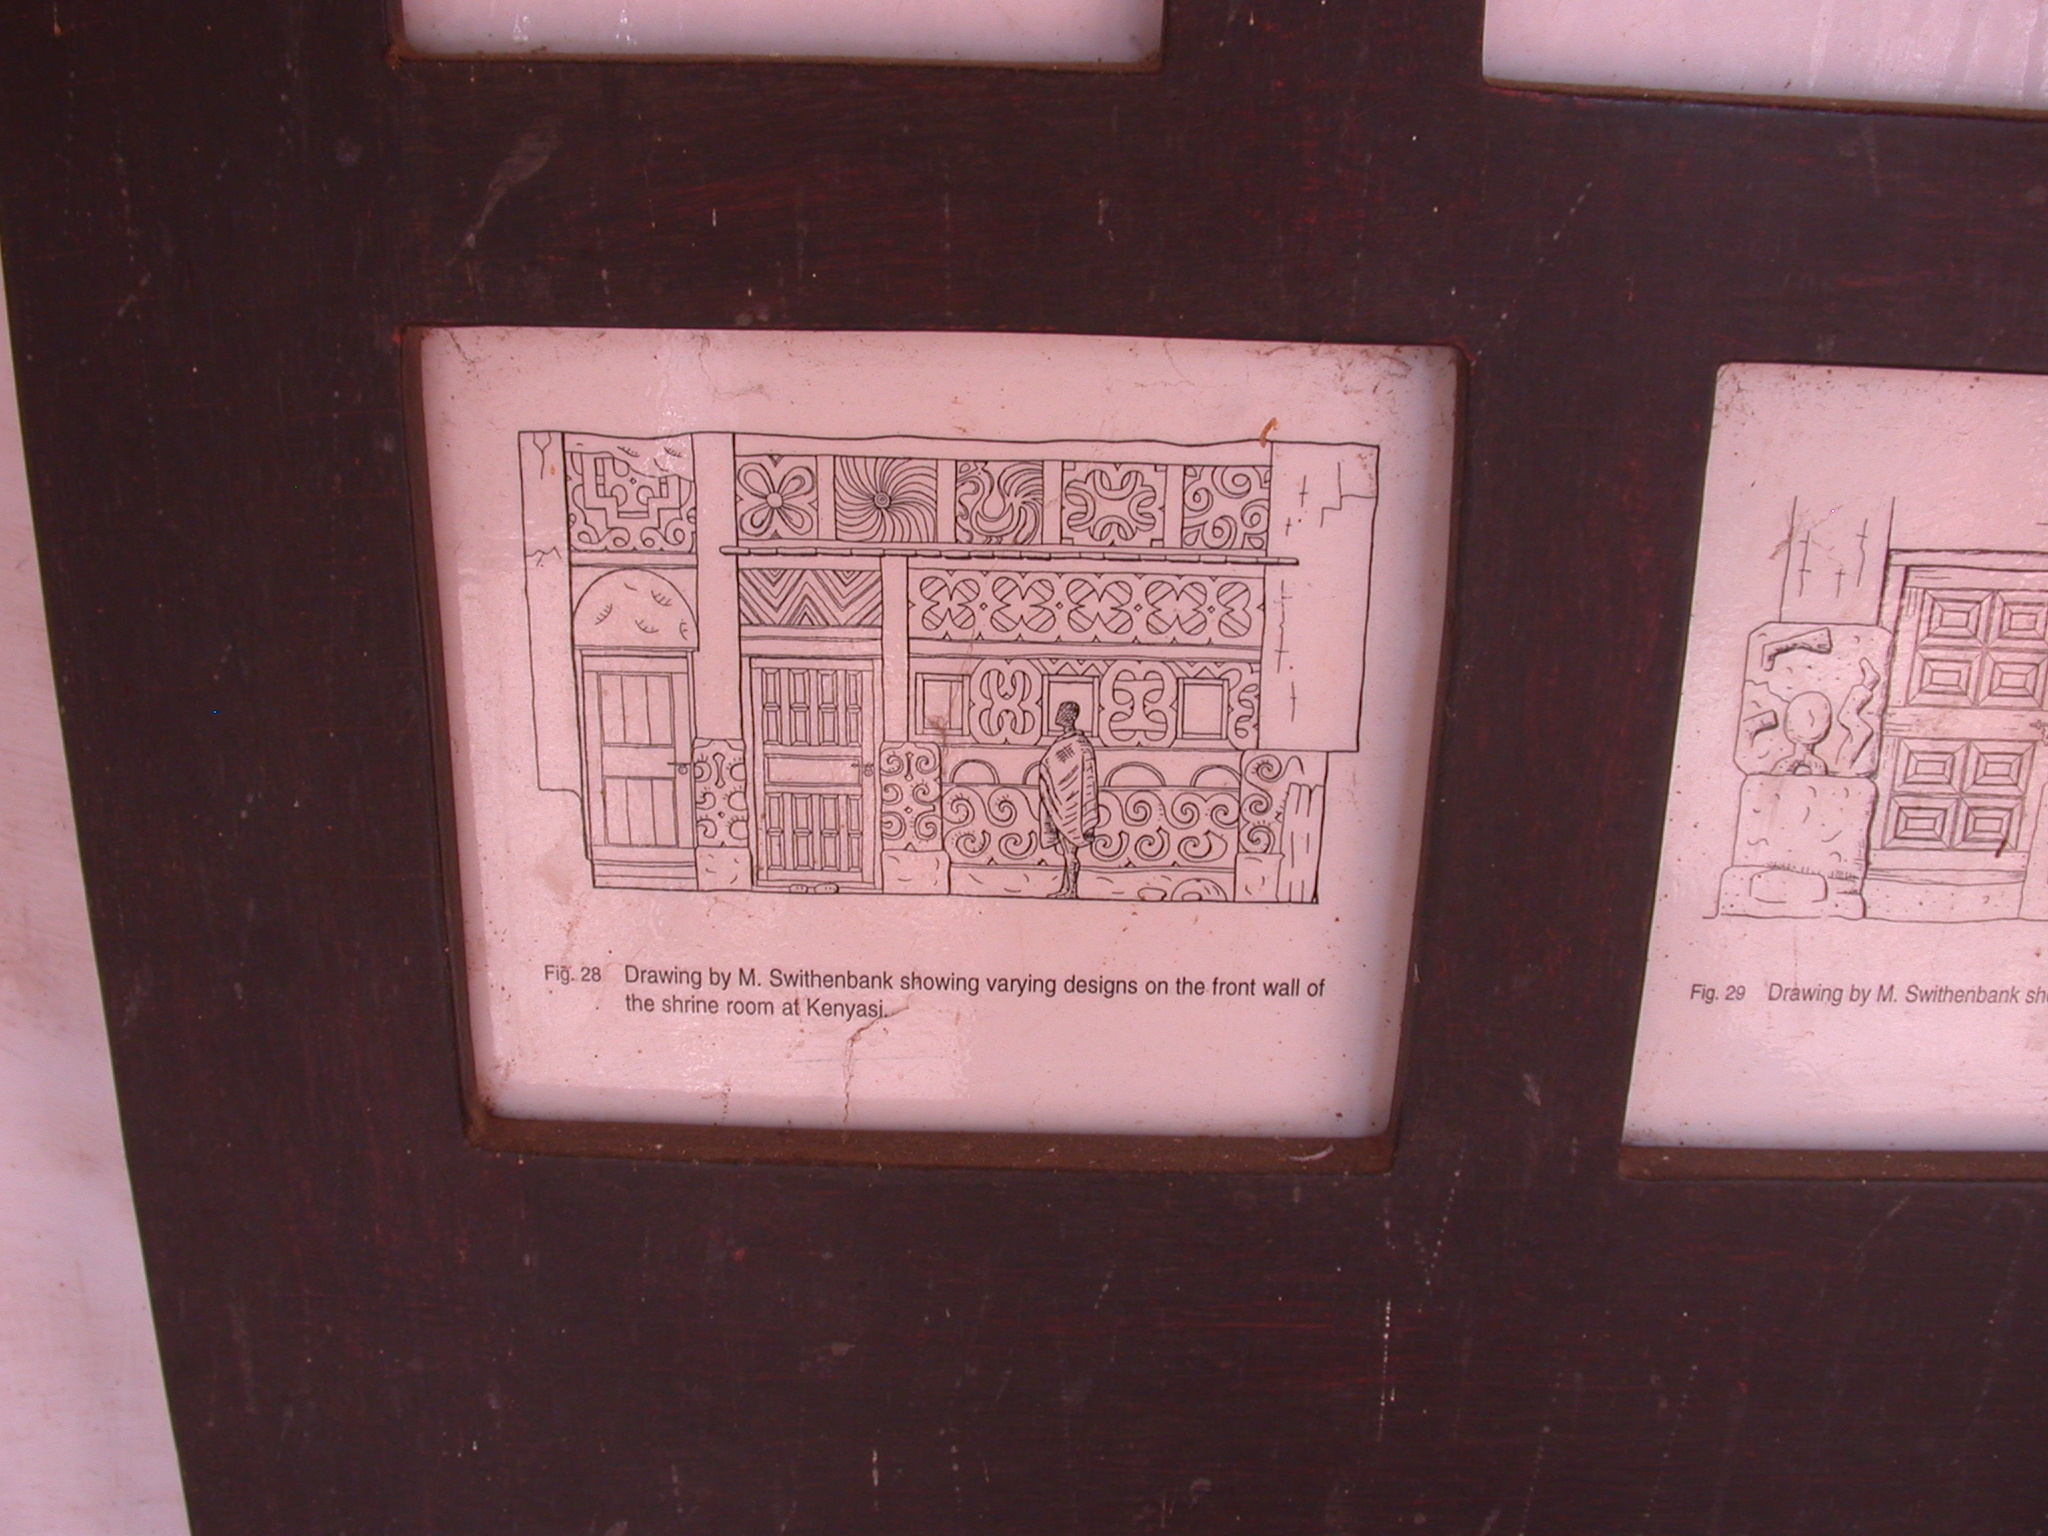 Drawing Showing Front Wall Designs at Kenyasi Shrine Room, Asante Traditional Shrine at Ejisu-Besease, Ghana